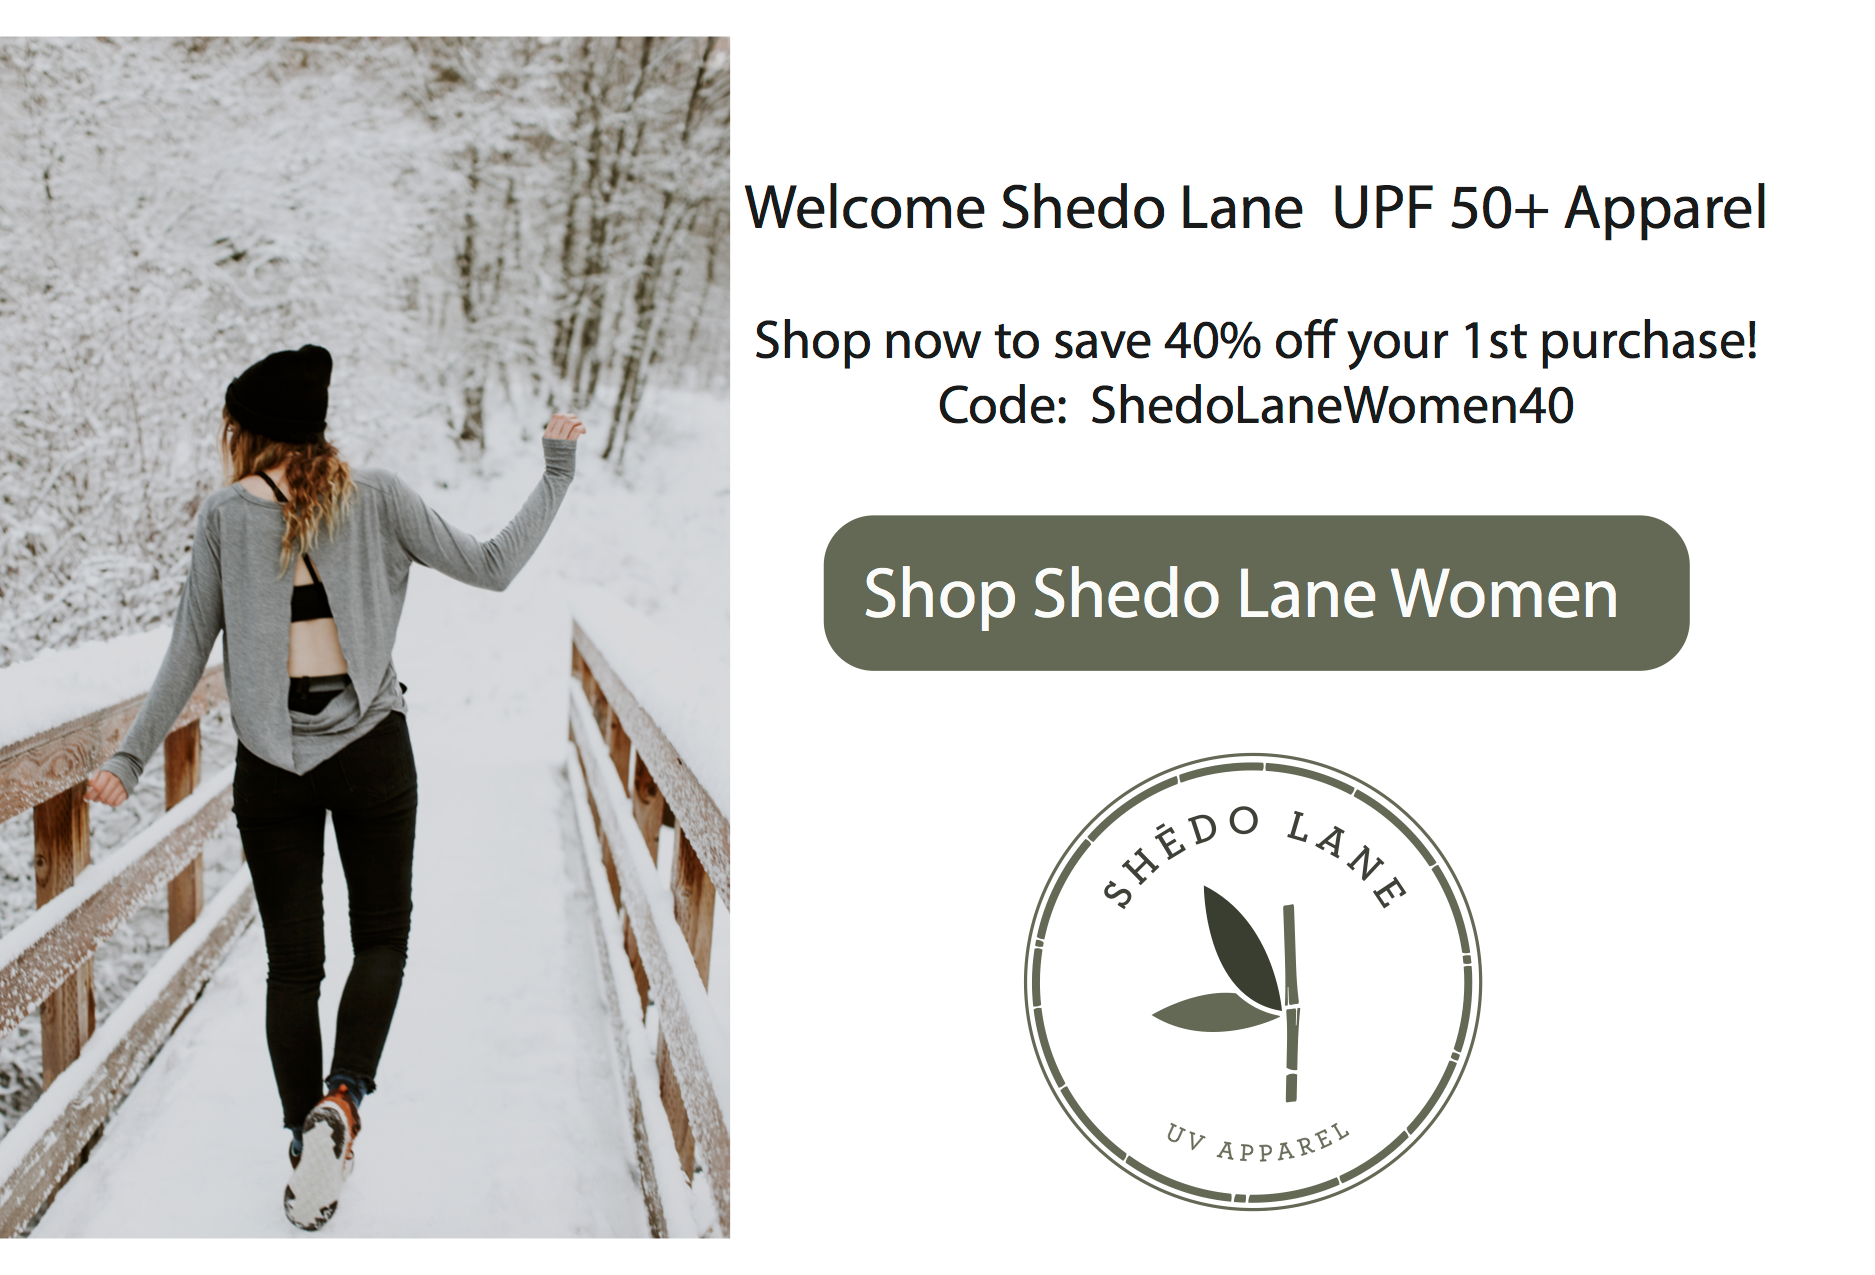 Women Sun Safe Apparel by Shēdo Lane